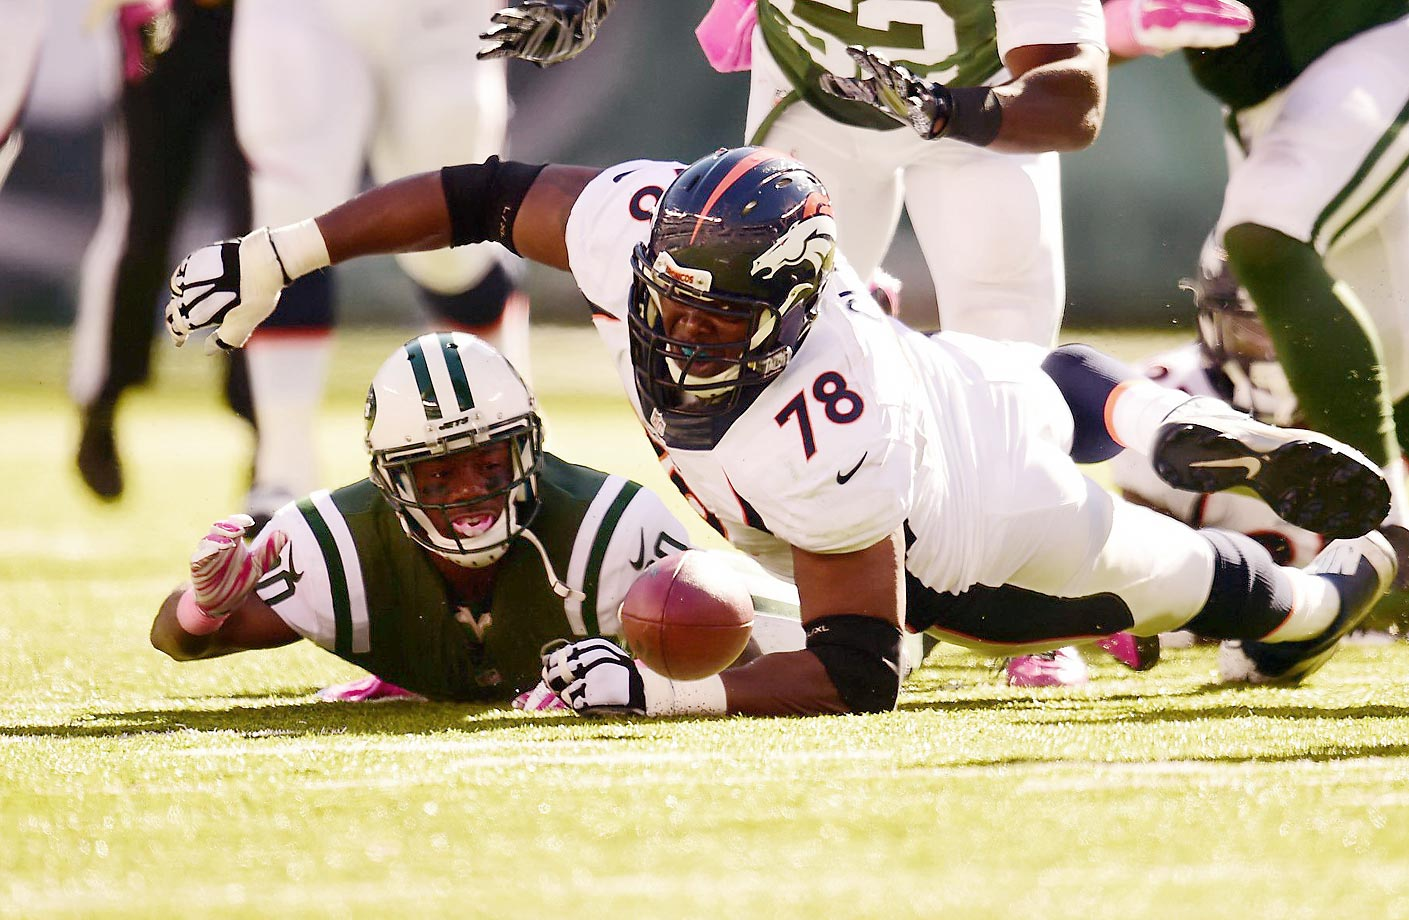 New York Jets defensive back Darrin Walls and                    Denver Broncos offensive tackle Ryan Clady scramble for a loose ball.